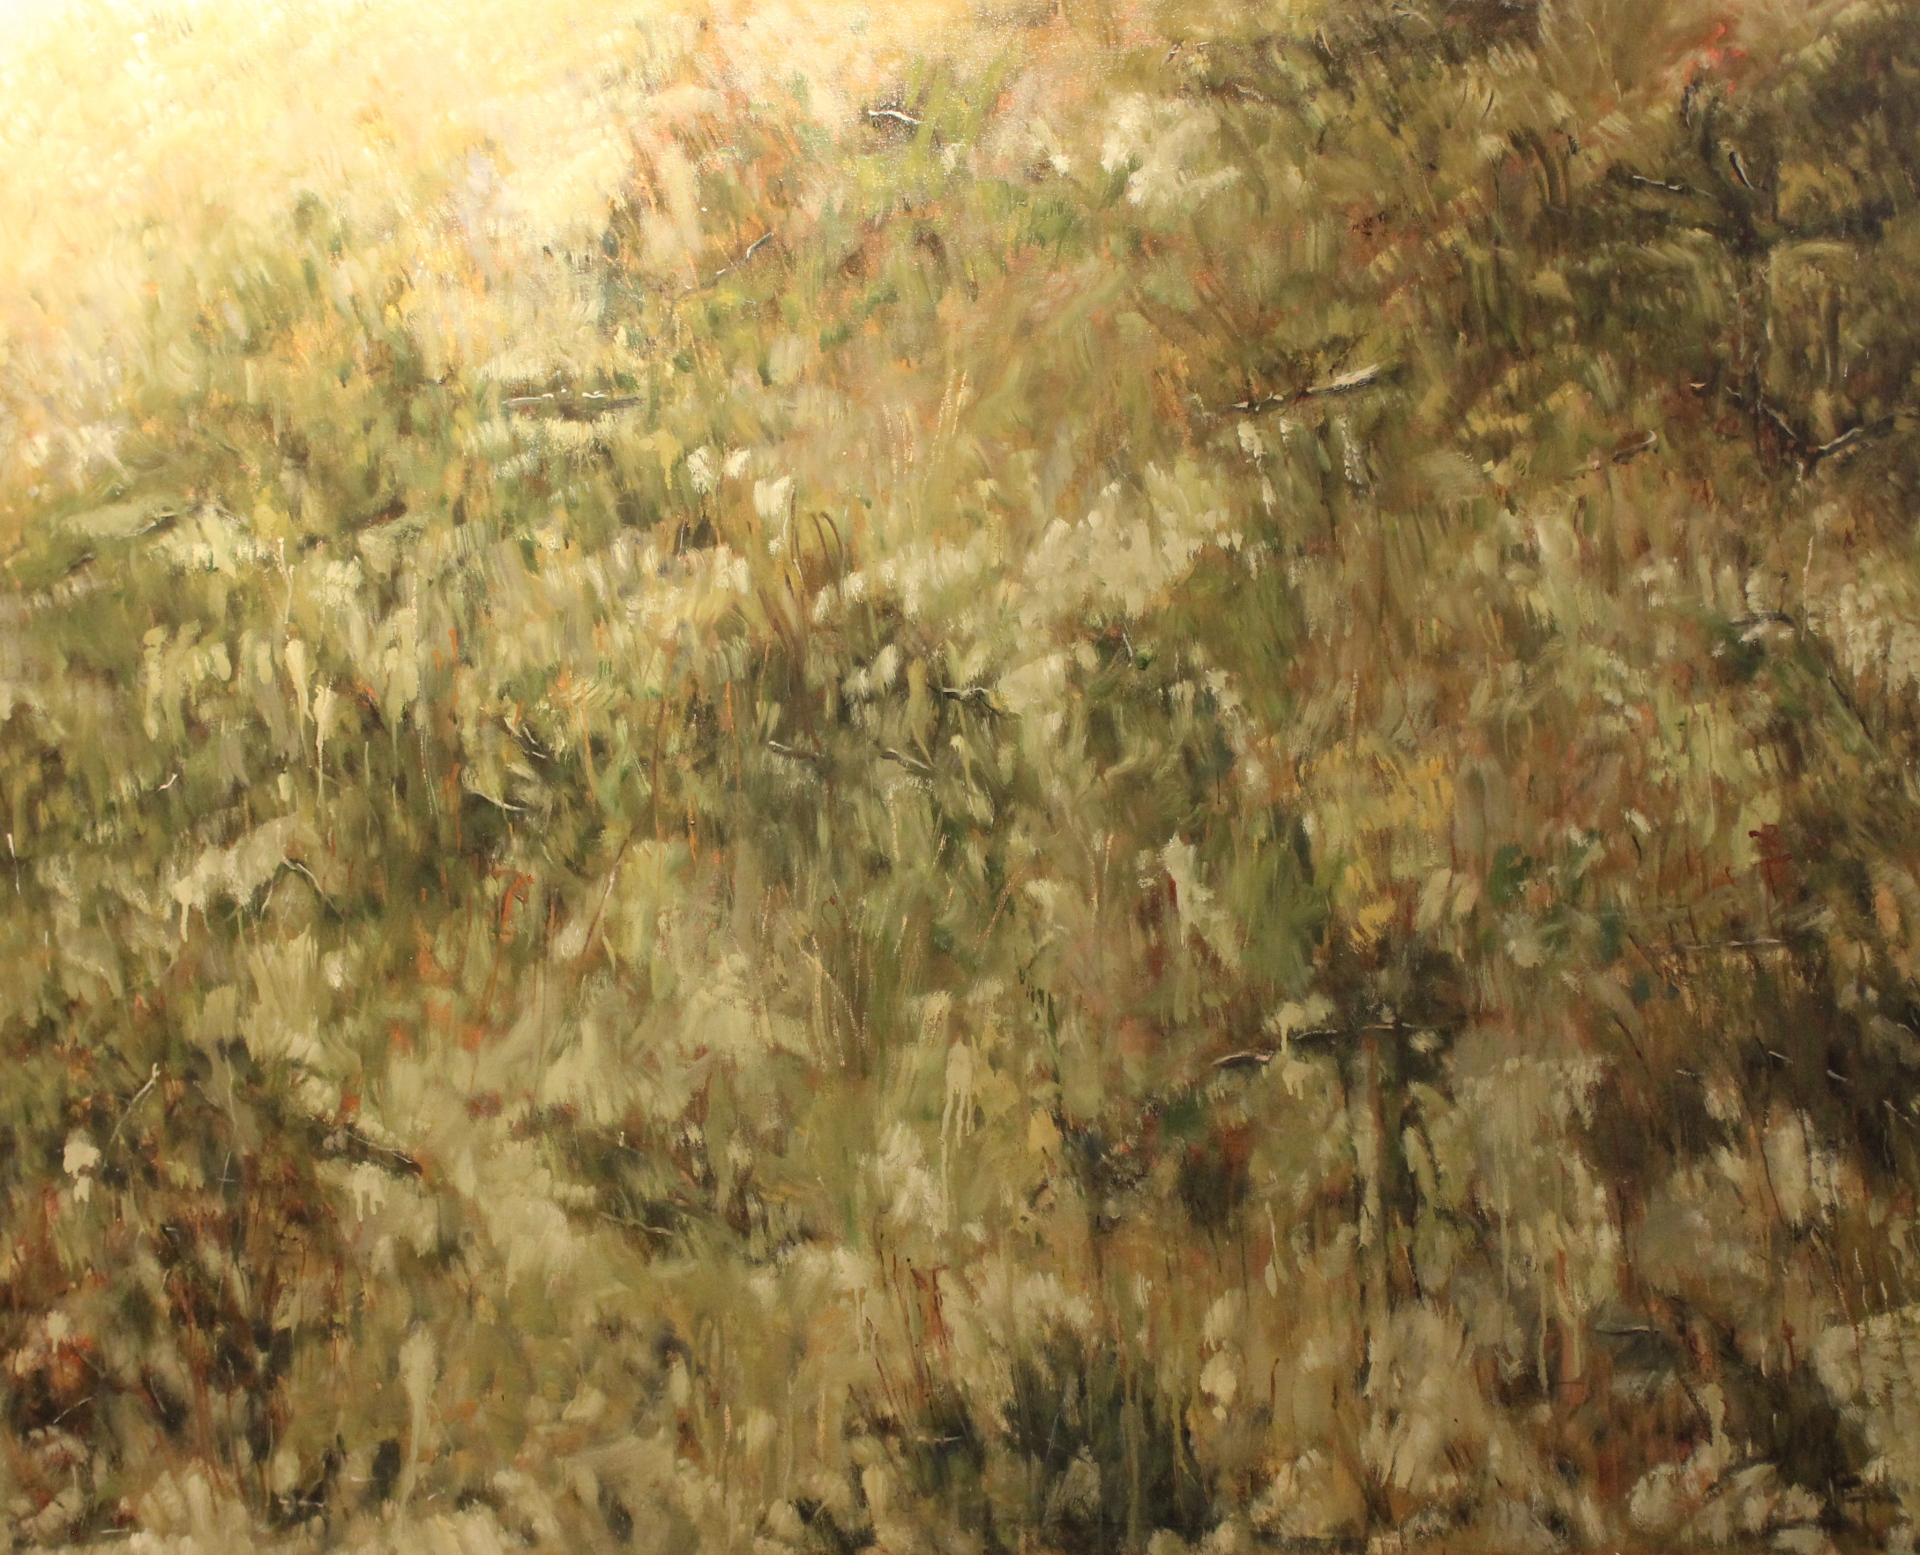 HILLSIDE GRASSES/PRAIRIE I - 48X60 - OIL ON CANVAS - 2010